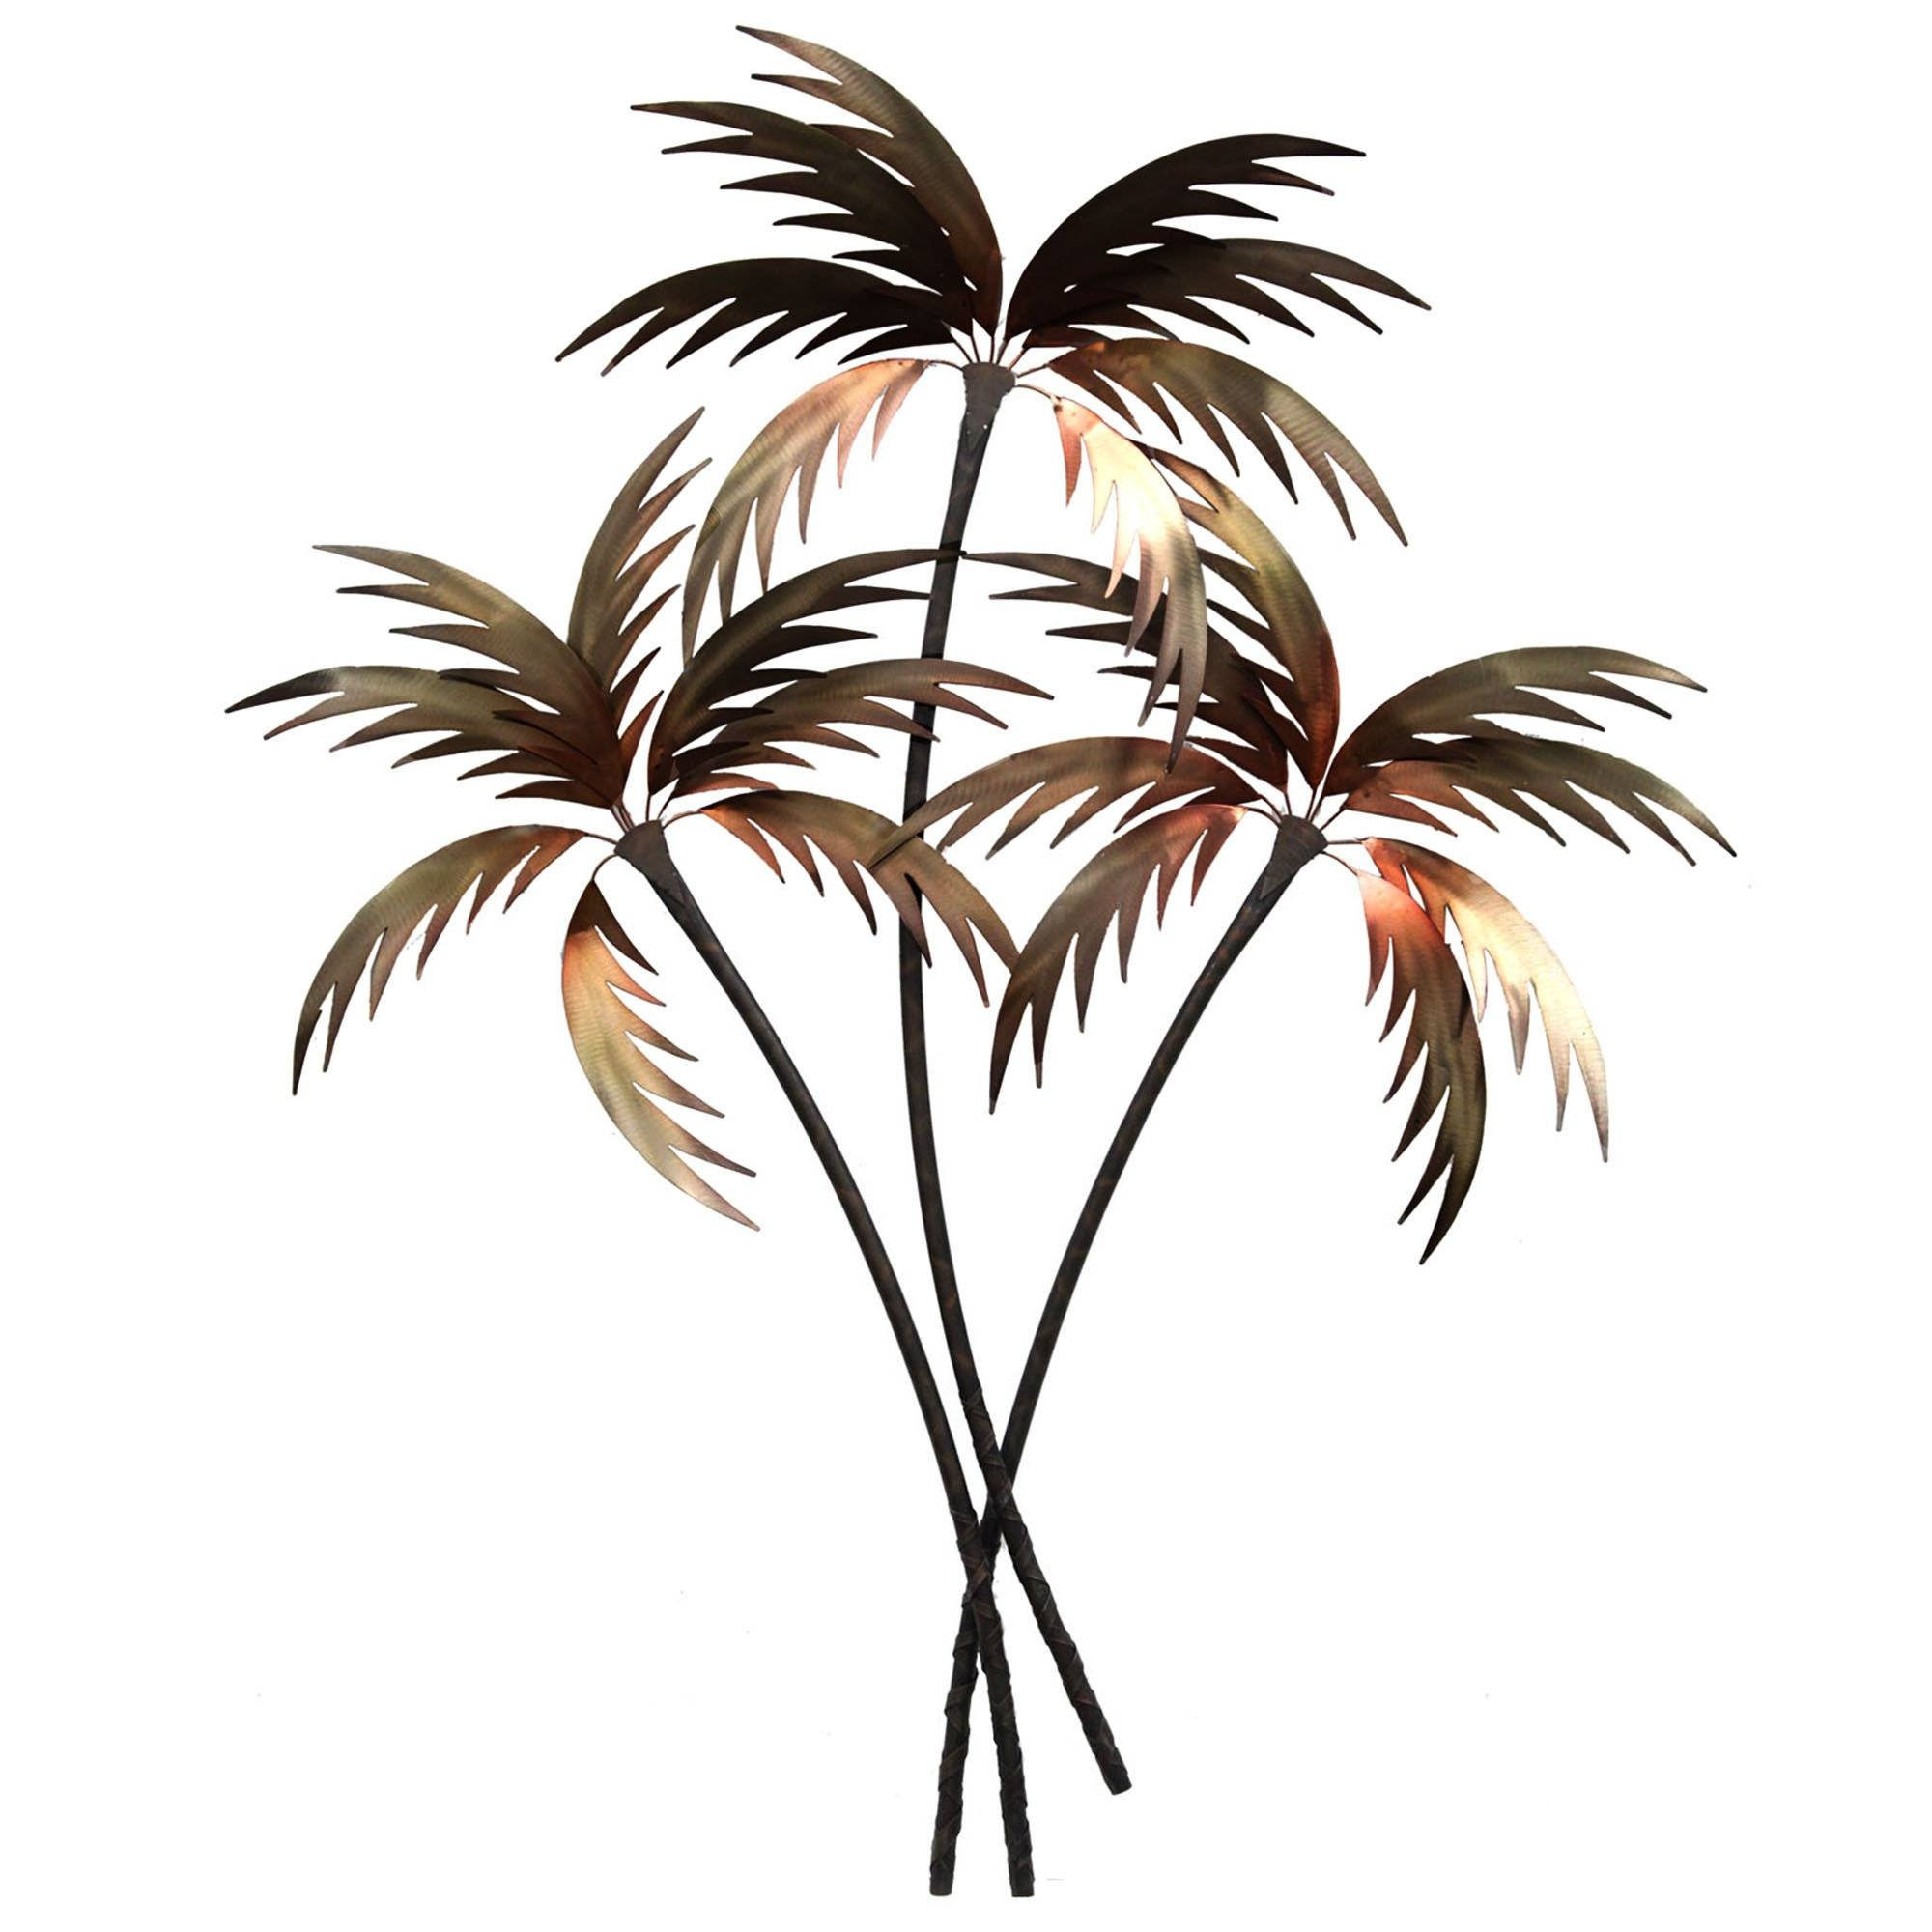 Palm Tree Wall Art, Palm Tree Bedroom Decor Palm Tree Metal With Regard To 2018 Metal Wall Art Palm Trees (View 3 of 20)